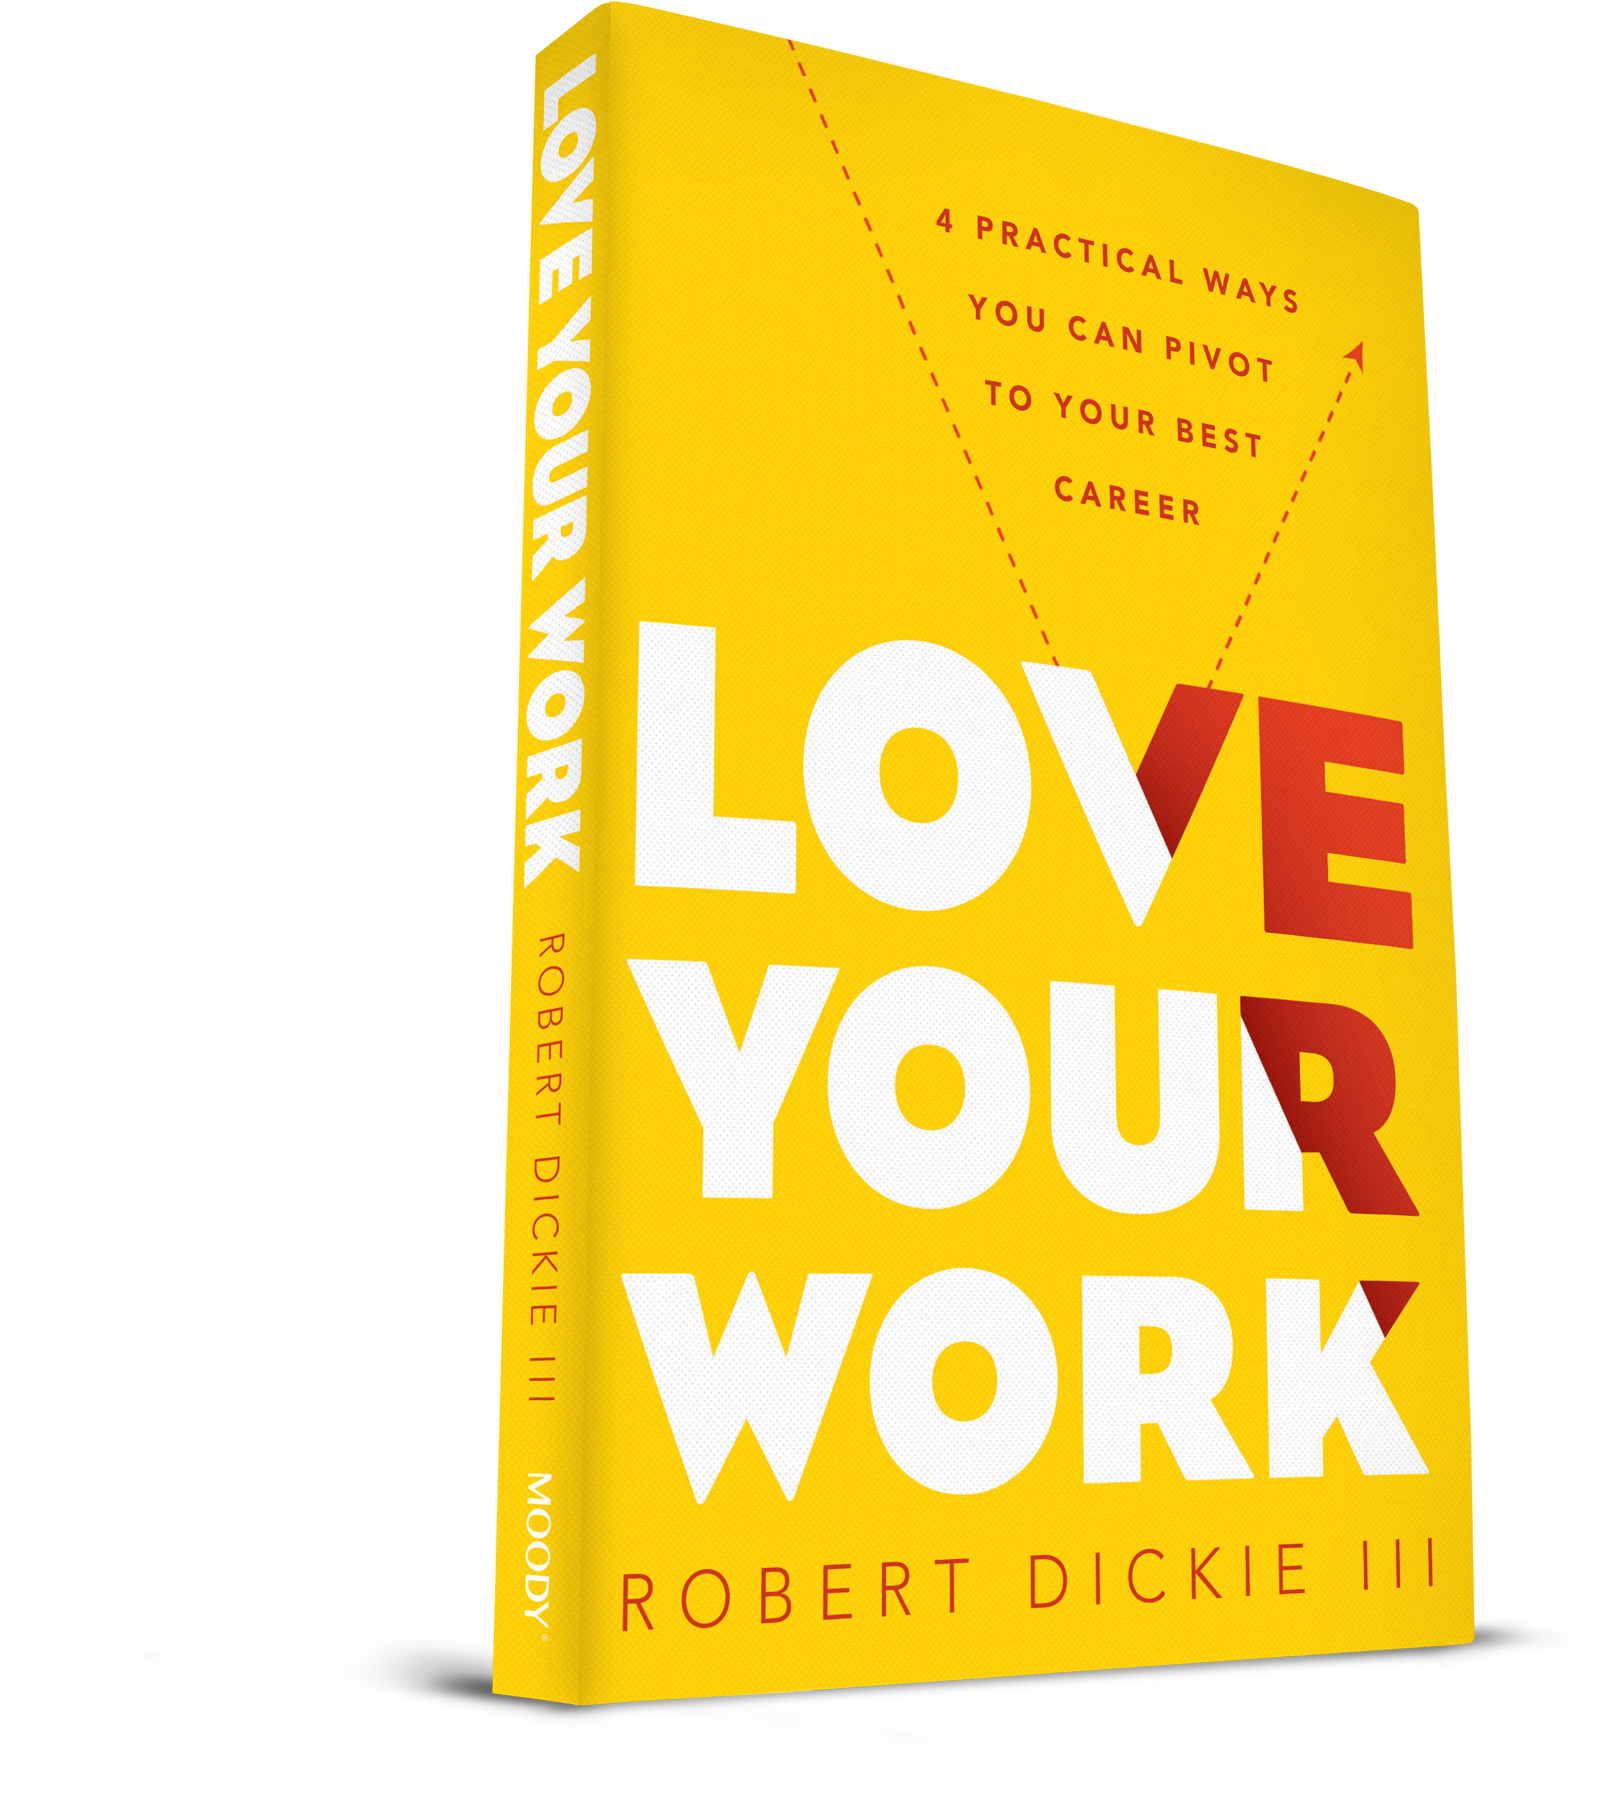 Love-your-work-cover